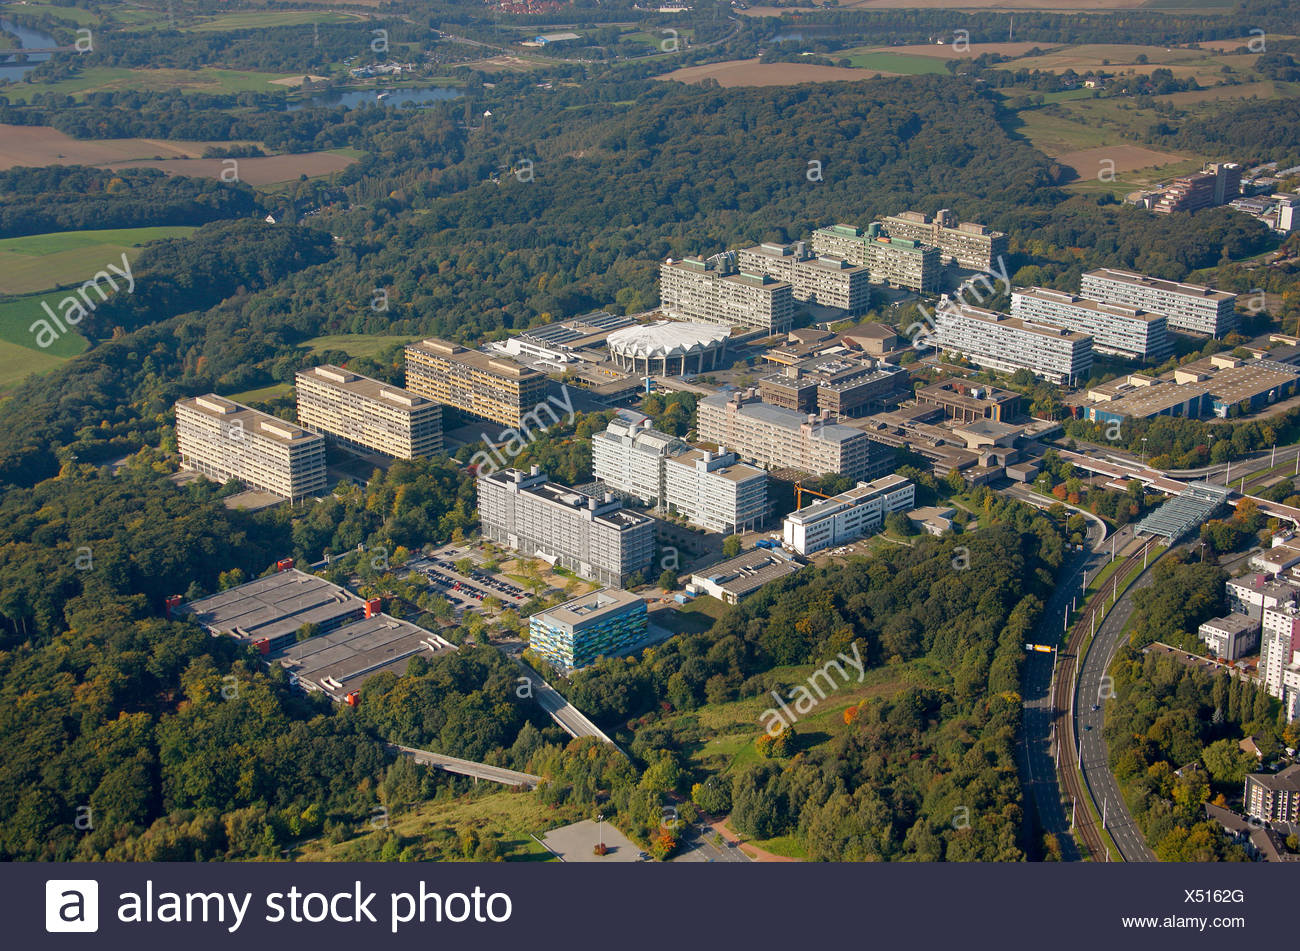 Aerial photograph, Centre for Biomedicine at the RUB, Ruhr University, Bochum, Ruhr district, North Rhine-Westphalia, Germany,  - Stock Image